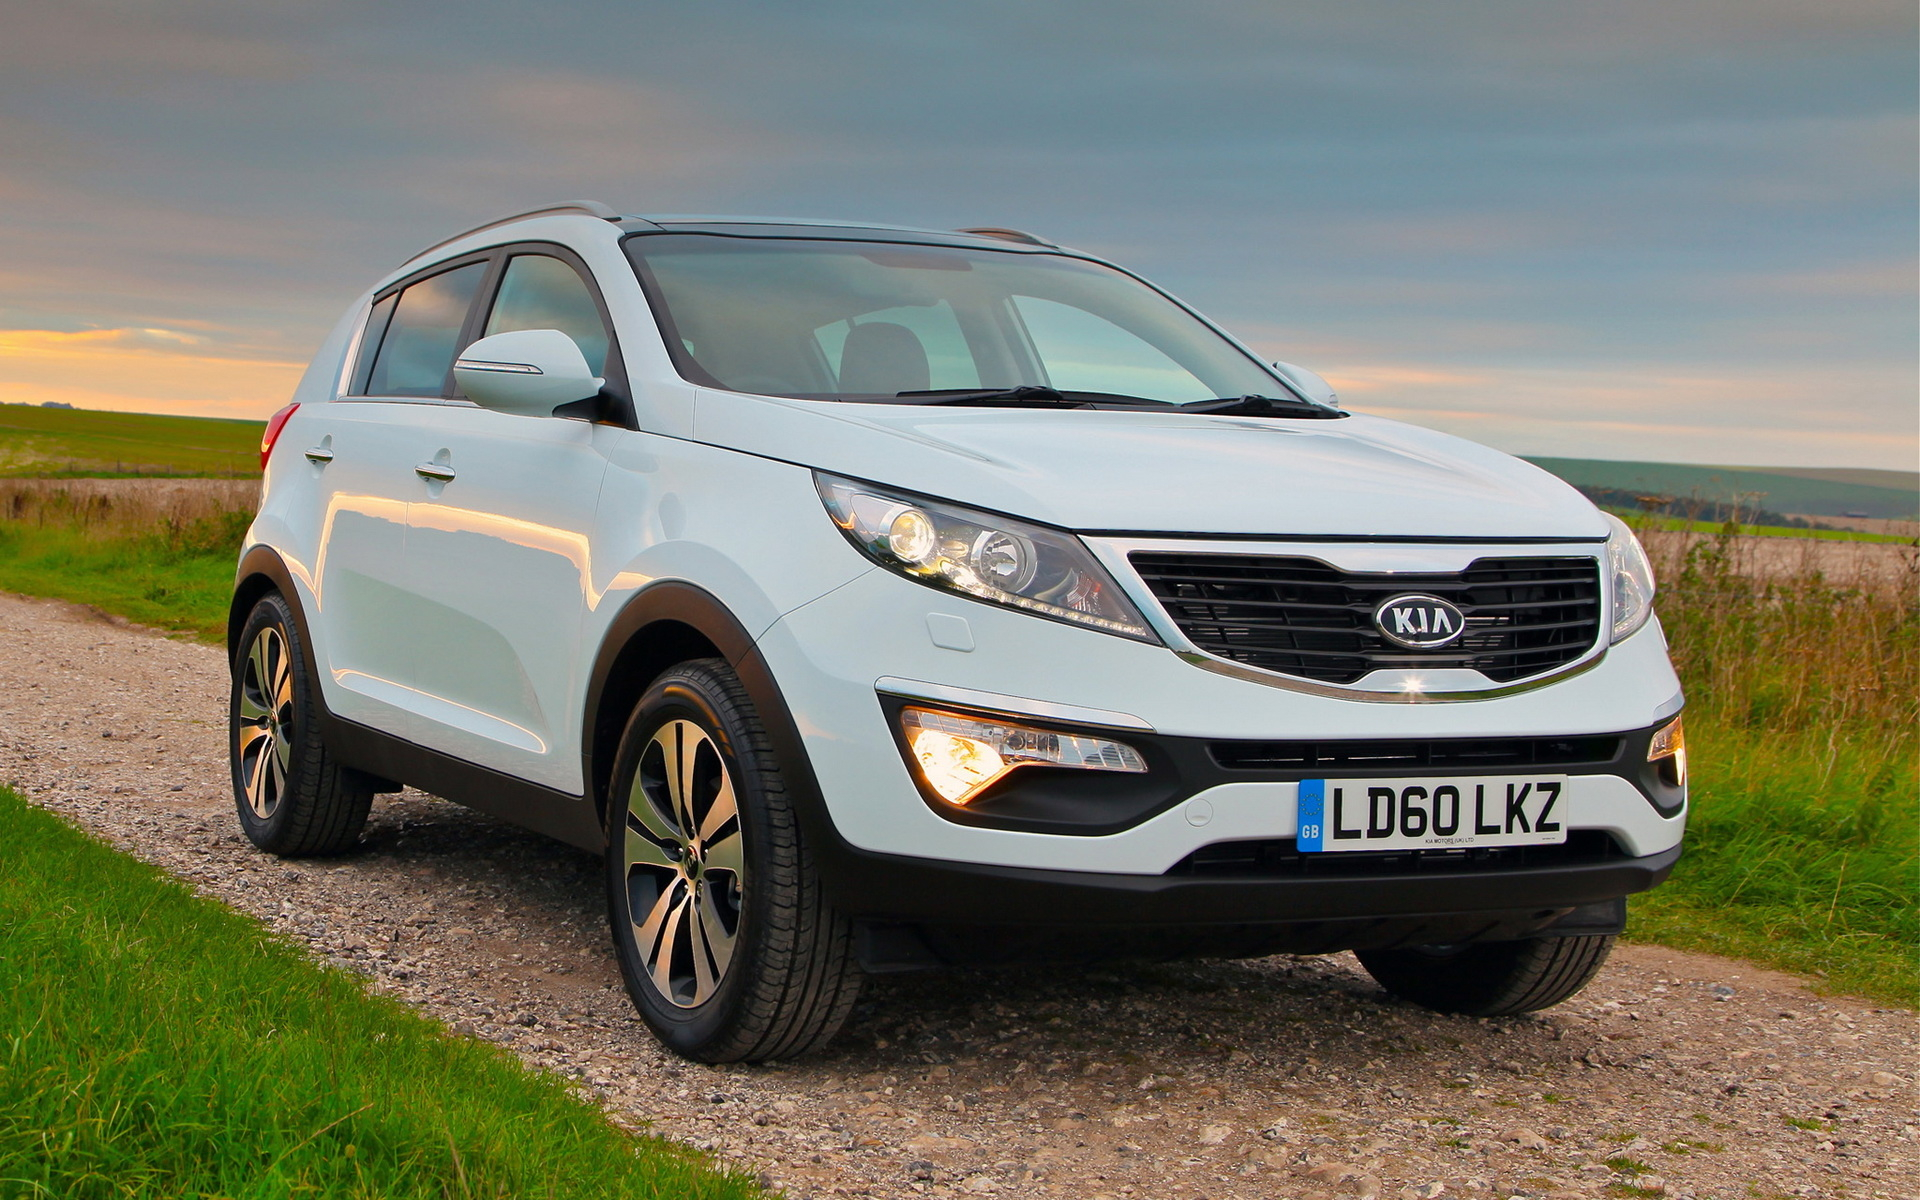 New Vehicle Recall Kia South Africa Started The Of Sportage Motors Recalls